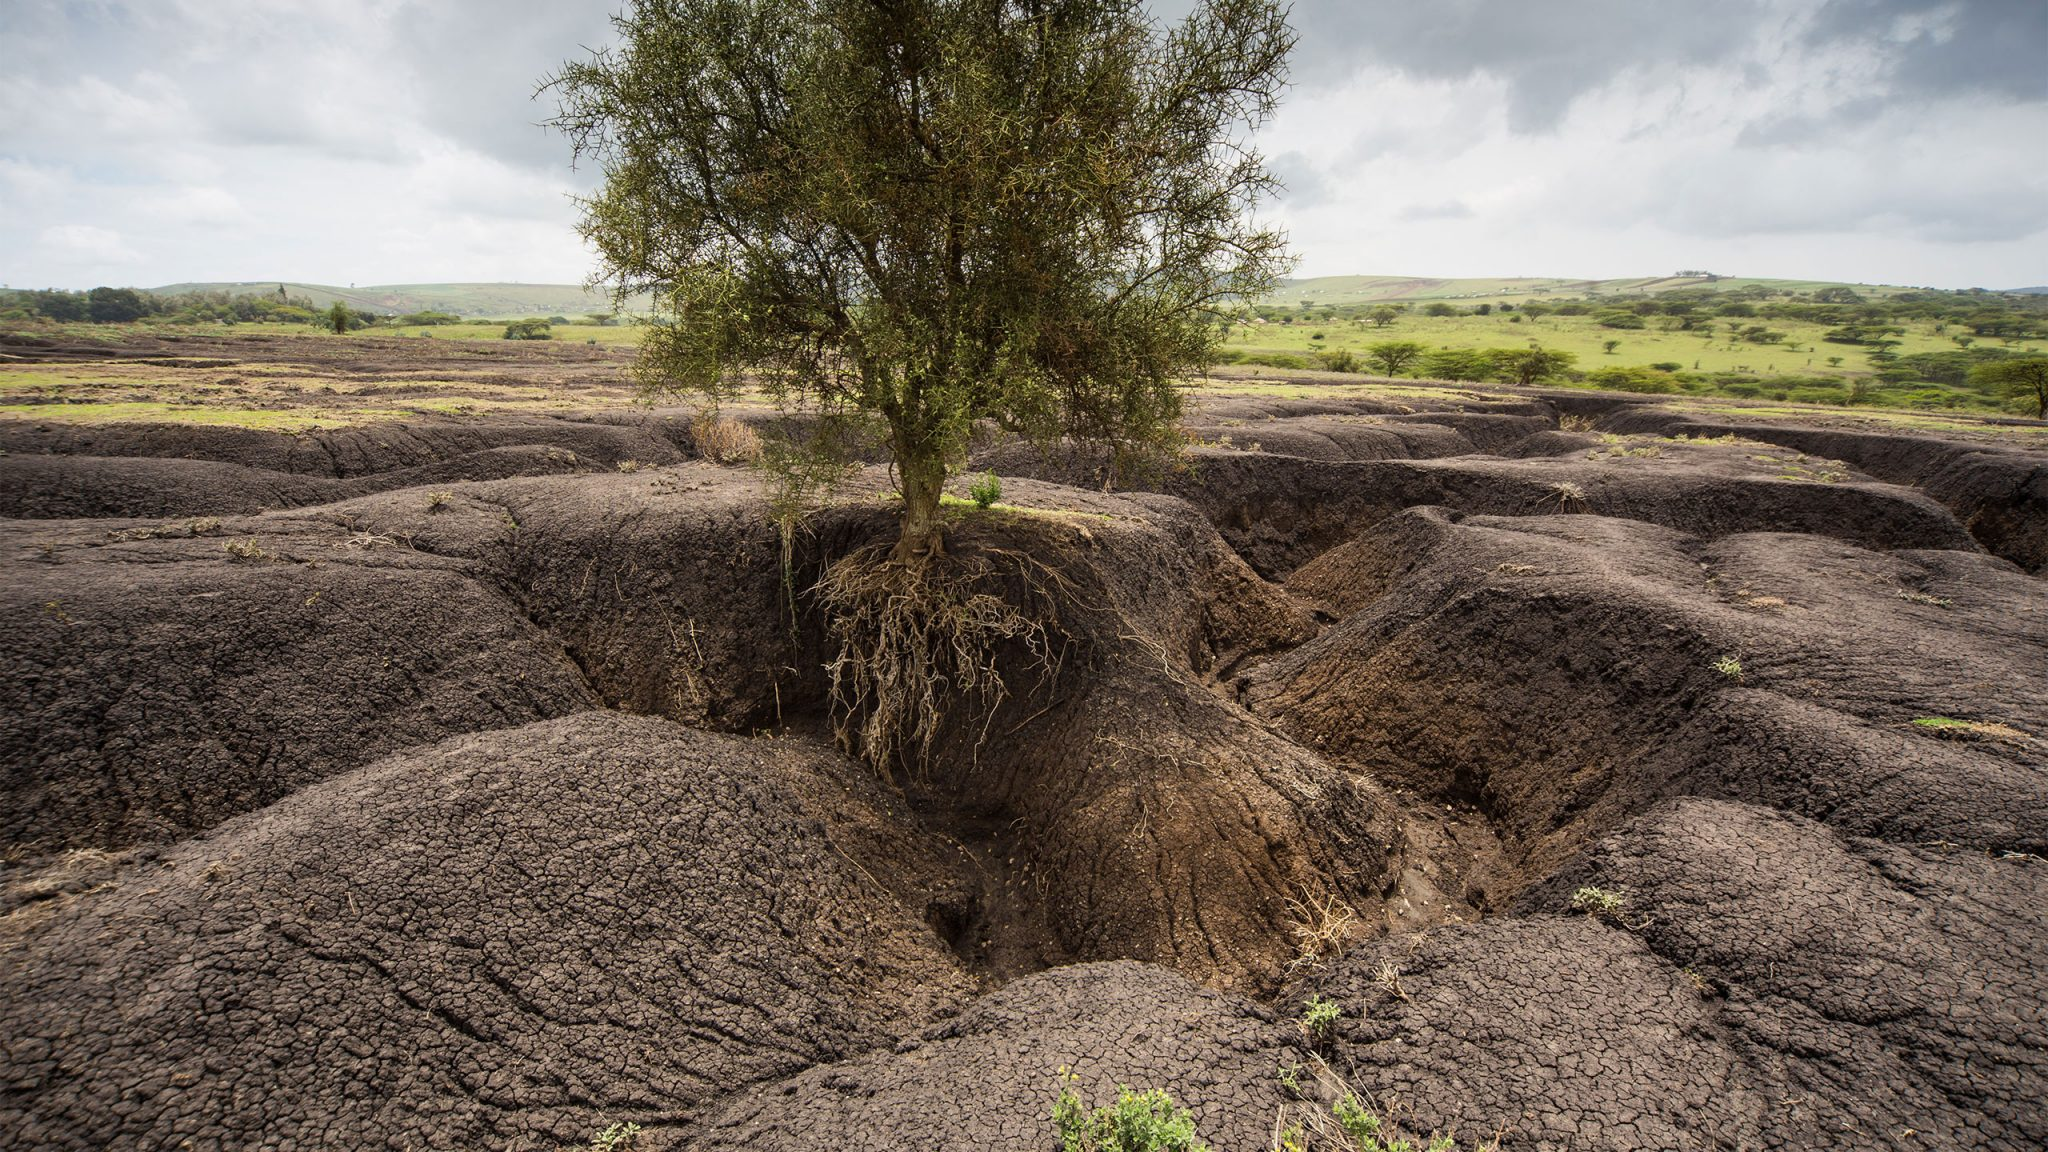 Exposed tree roots left hanging over gullies formed by extreme rainfall. Soil erosion impacts on communities at local and global levels.